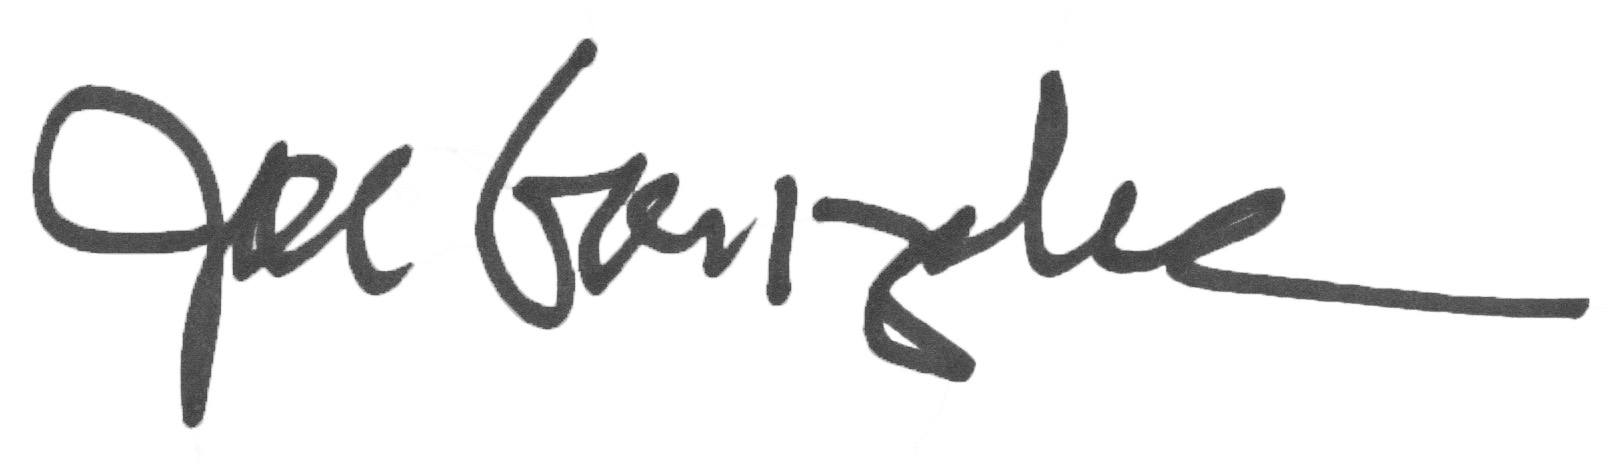 signature-thick-web.jpg